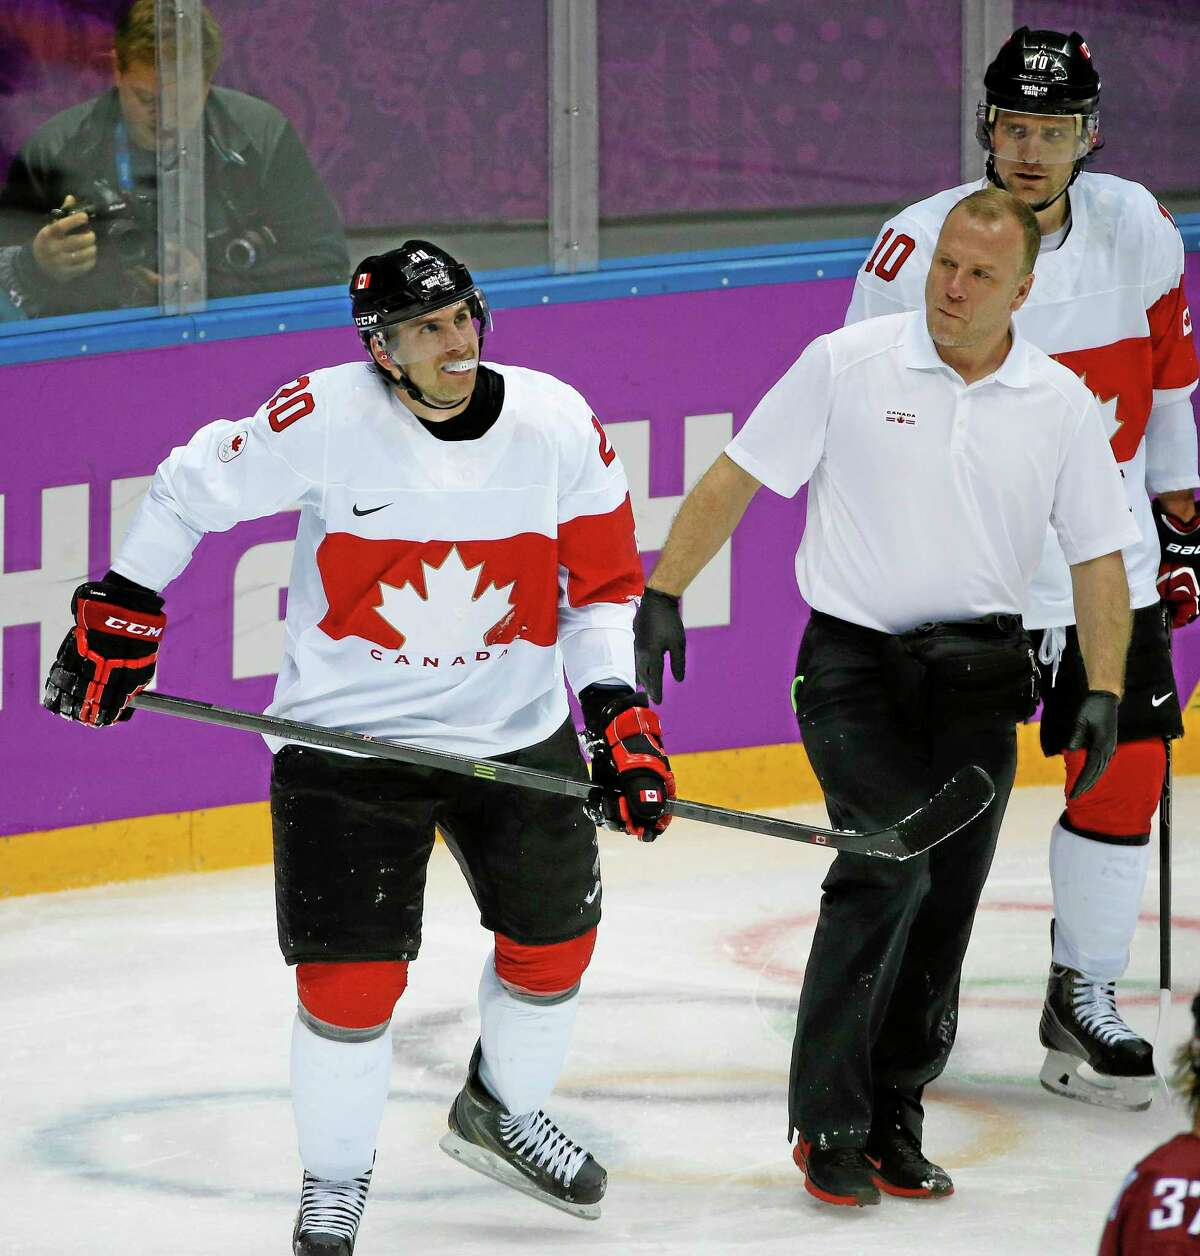 Canada forward John Tavares skates off the ice with a trainer after sustaining a knee injury during the second period of a men's quarterfinal game against Latvia at Winter Olympics last Wednesday in Sochi, Russia. The Islanders captain will not need surgery.